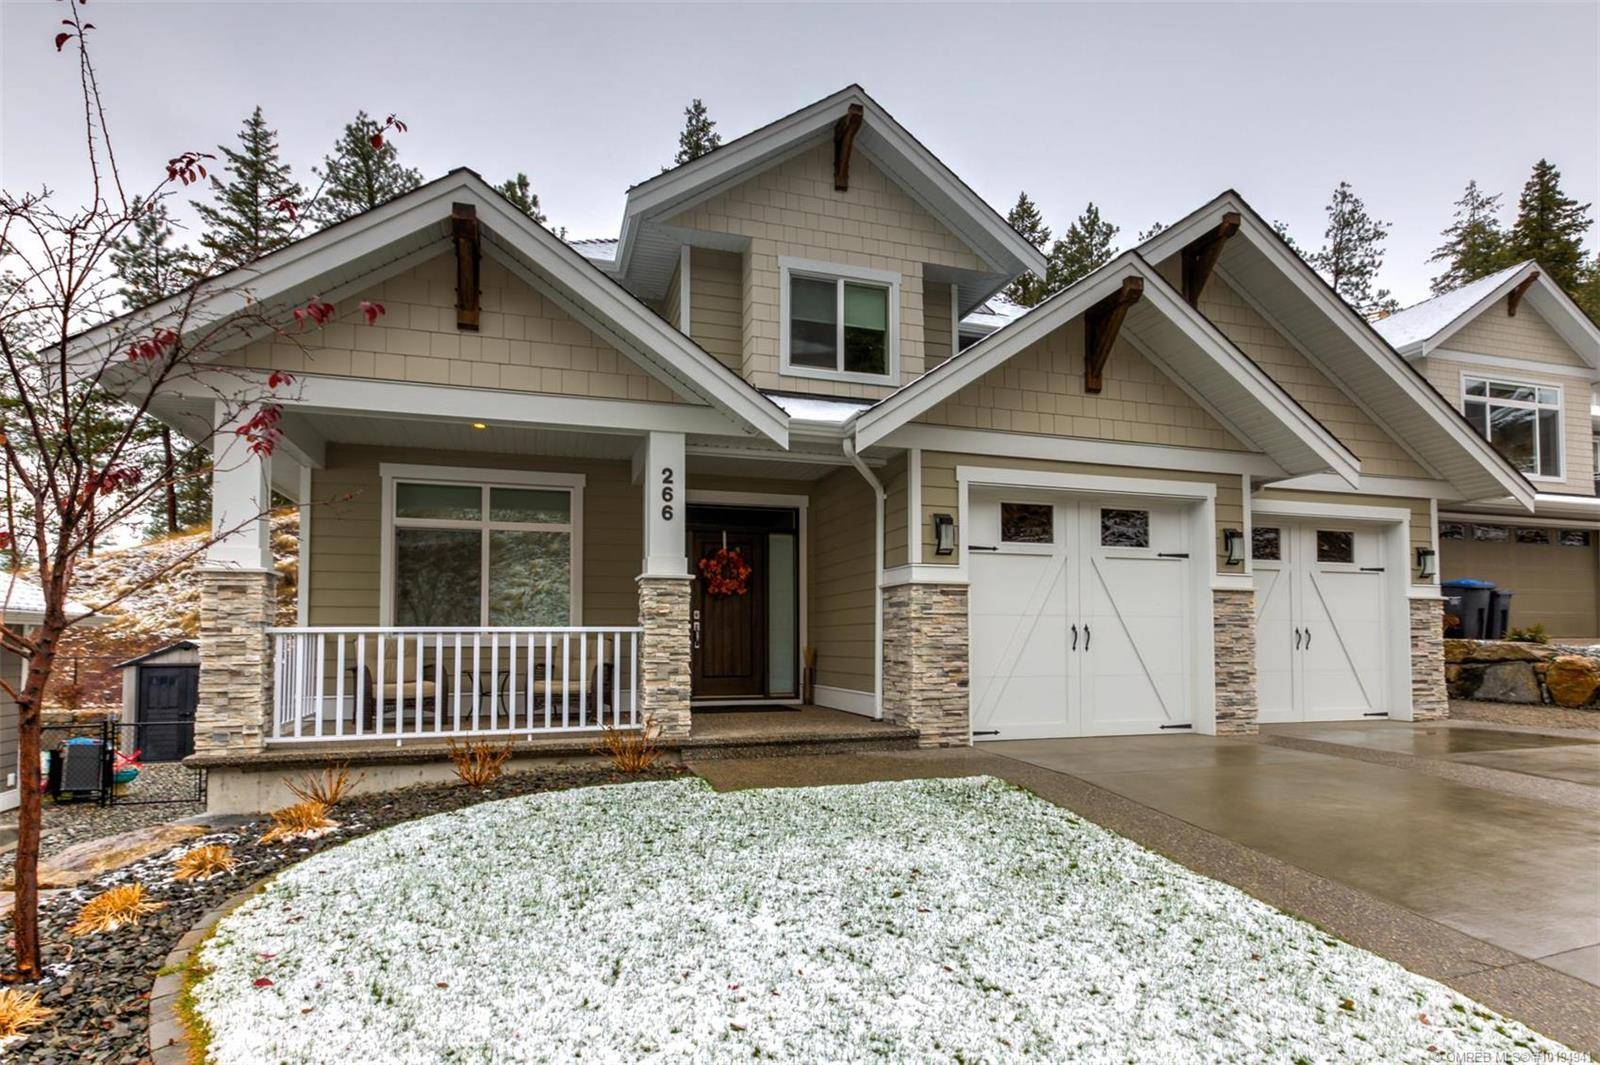 House for sale at 266 Upper Canyon Dr Kelowna British Columbia - MLS: 10194941